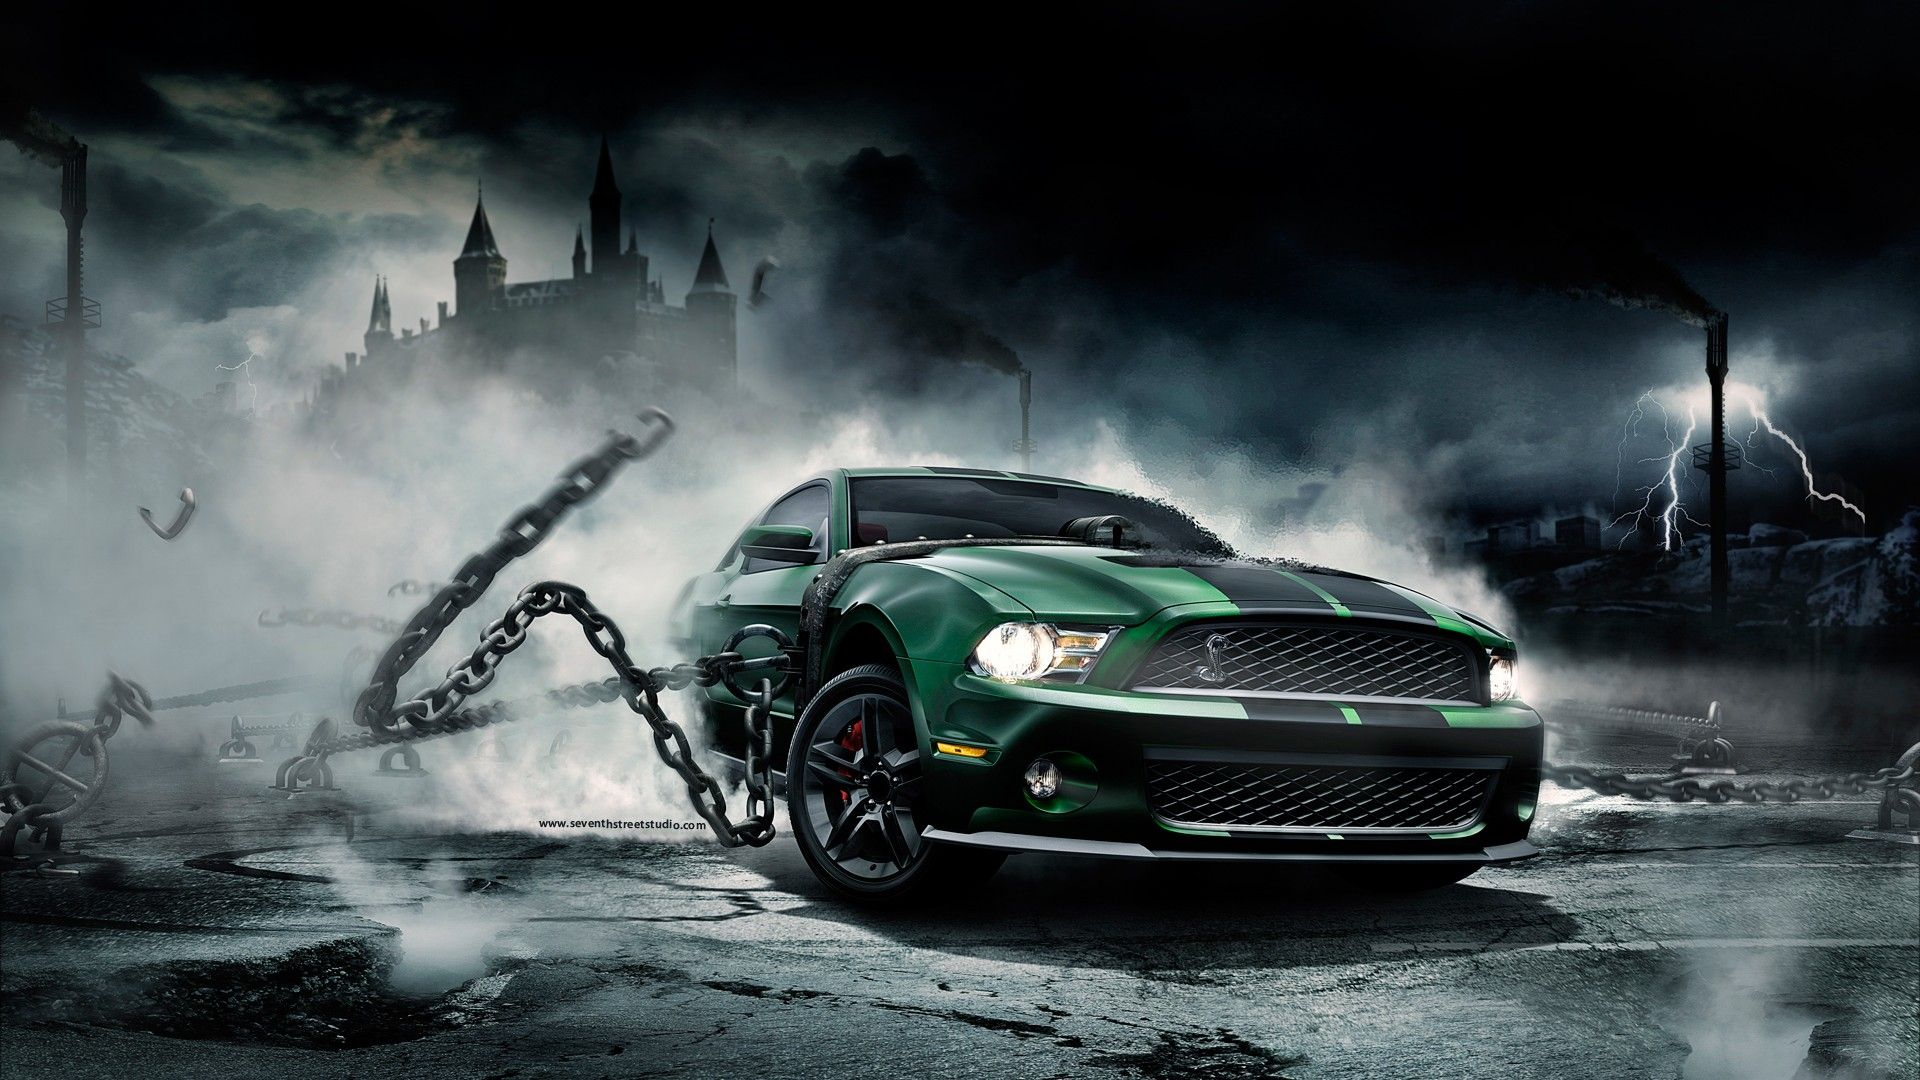 cool cool hd cars wallpapers background 3408 hd wallpapers background